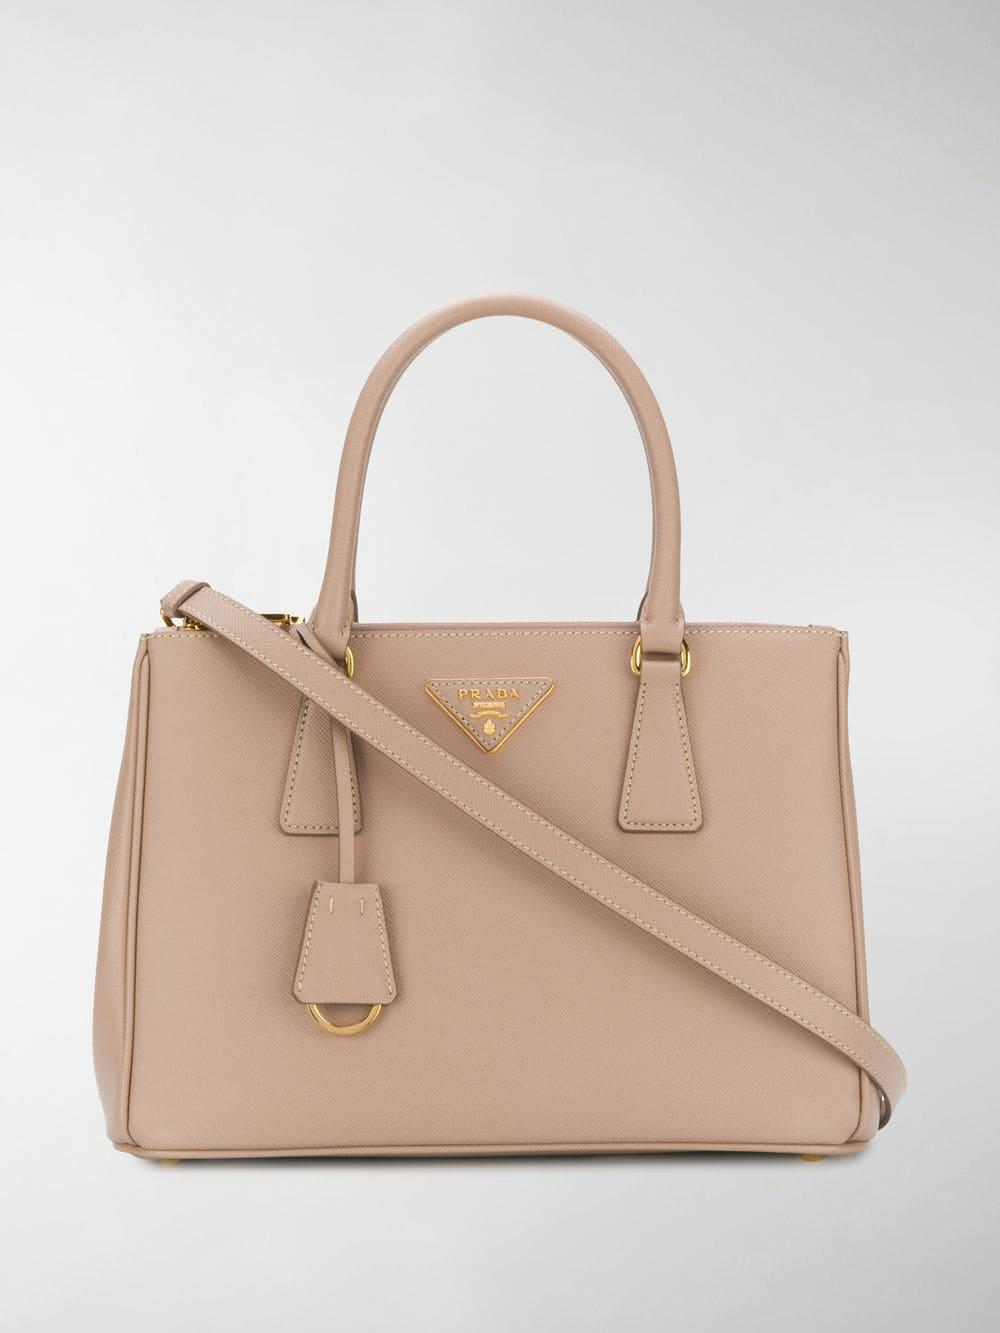 05ca57361c Lyst - Prada Galleria Tote Bag - Save 16%